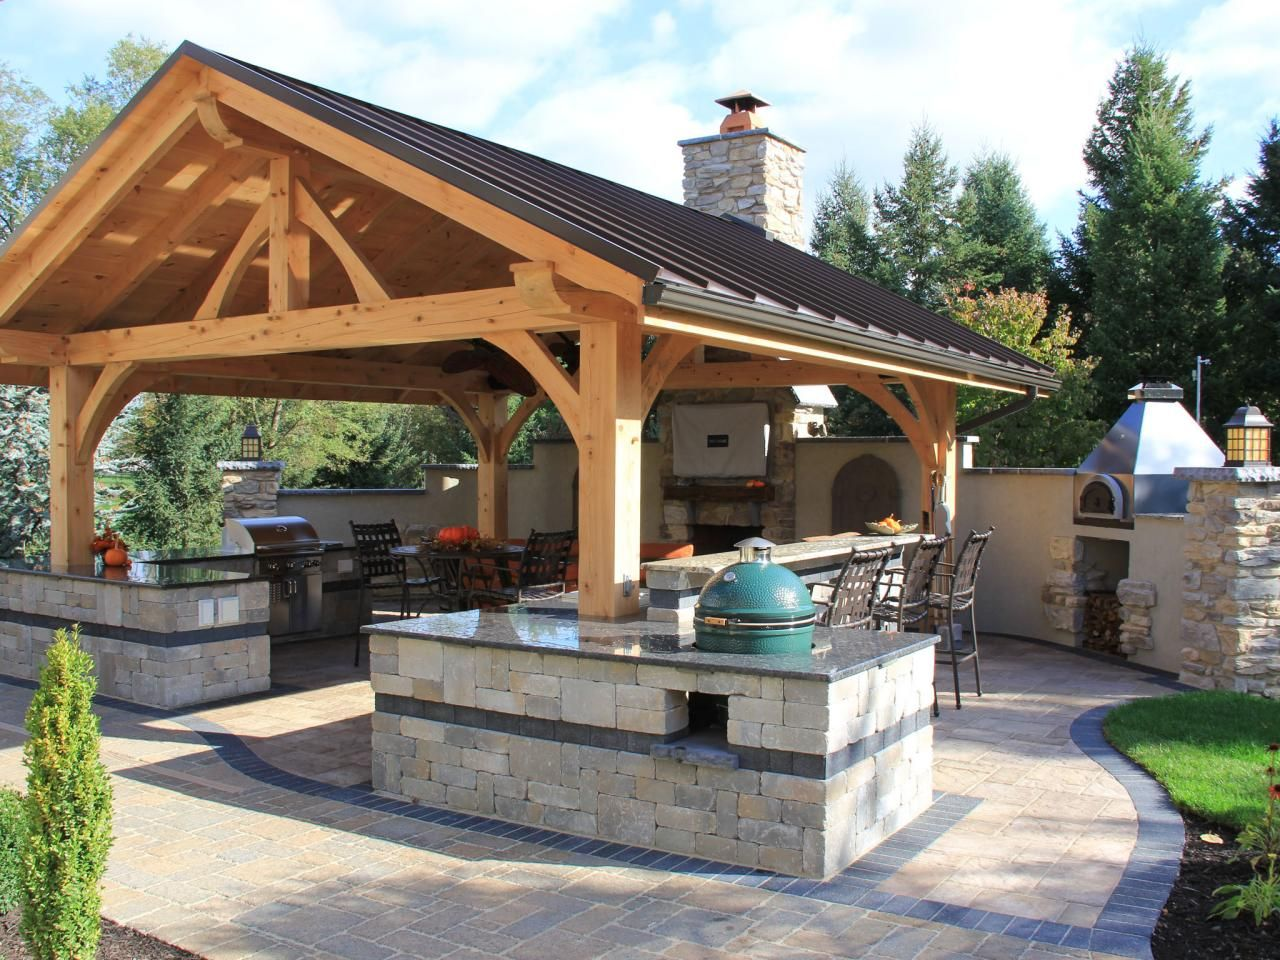 Covered Outdoor Kitchen Track Lighting Kits 27 Amazing Cabinets Ideas Make Guests Will Go 29 Your Certainly Crazy Houseideas Farmhousetable Bathroomideas Kitchendesign